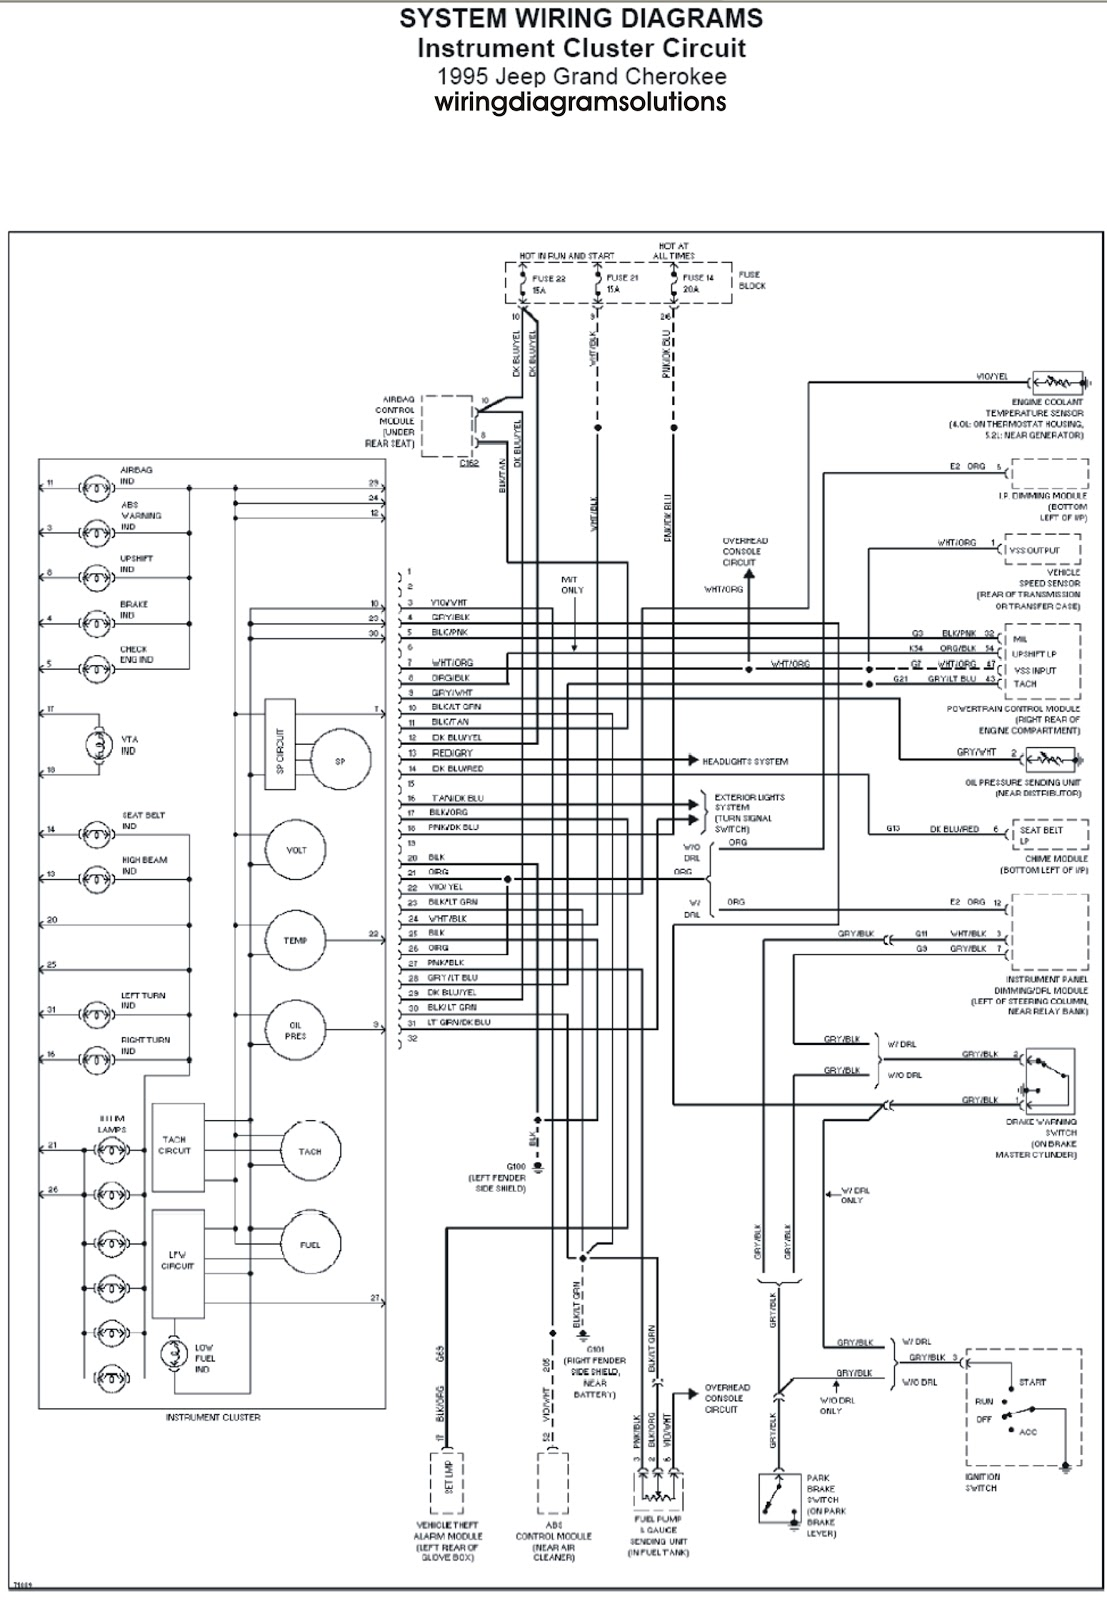 Jeep Grand Cherokee Wiring Diagram | Wiring Diagram Database on subaru baja wiring diagram, jeep xj ecu, jeep cj wiring-diagram 1975, jeep xj sensor, jeep xj starter, chevy metro wiring diagram, lexus rx300 wiring diagram, gmc jimmy wiring diagram, jeep hurricane wiring diagram, jeep xj tools, jeep xj switch, jeep electrical wiring schematic, jeep xj recovery points, 2000 ford trailer wiring diagram, jeep jk wiring-diagram, oldsmobile cutlass wiring diagram, jeep zj wiring diagram, jeep xj running rich, jeep xj manual, jeep xj thermostat,